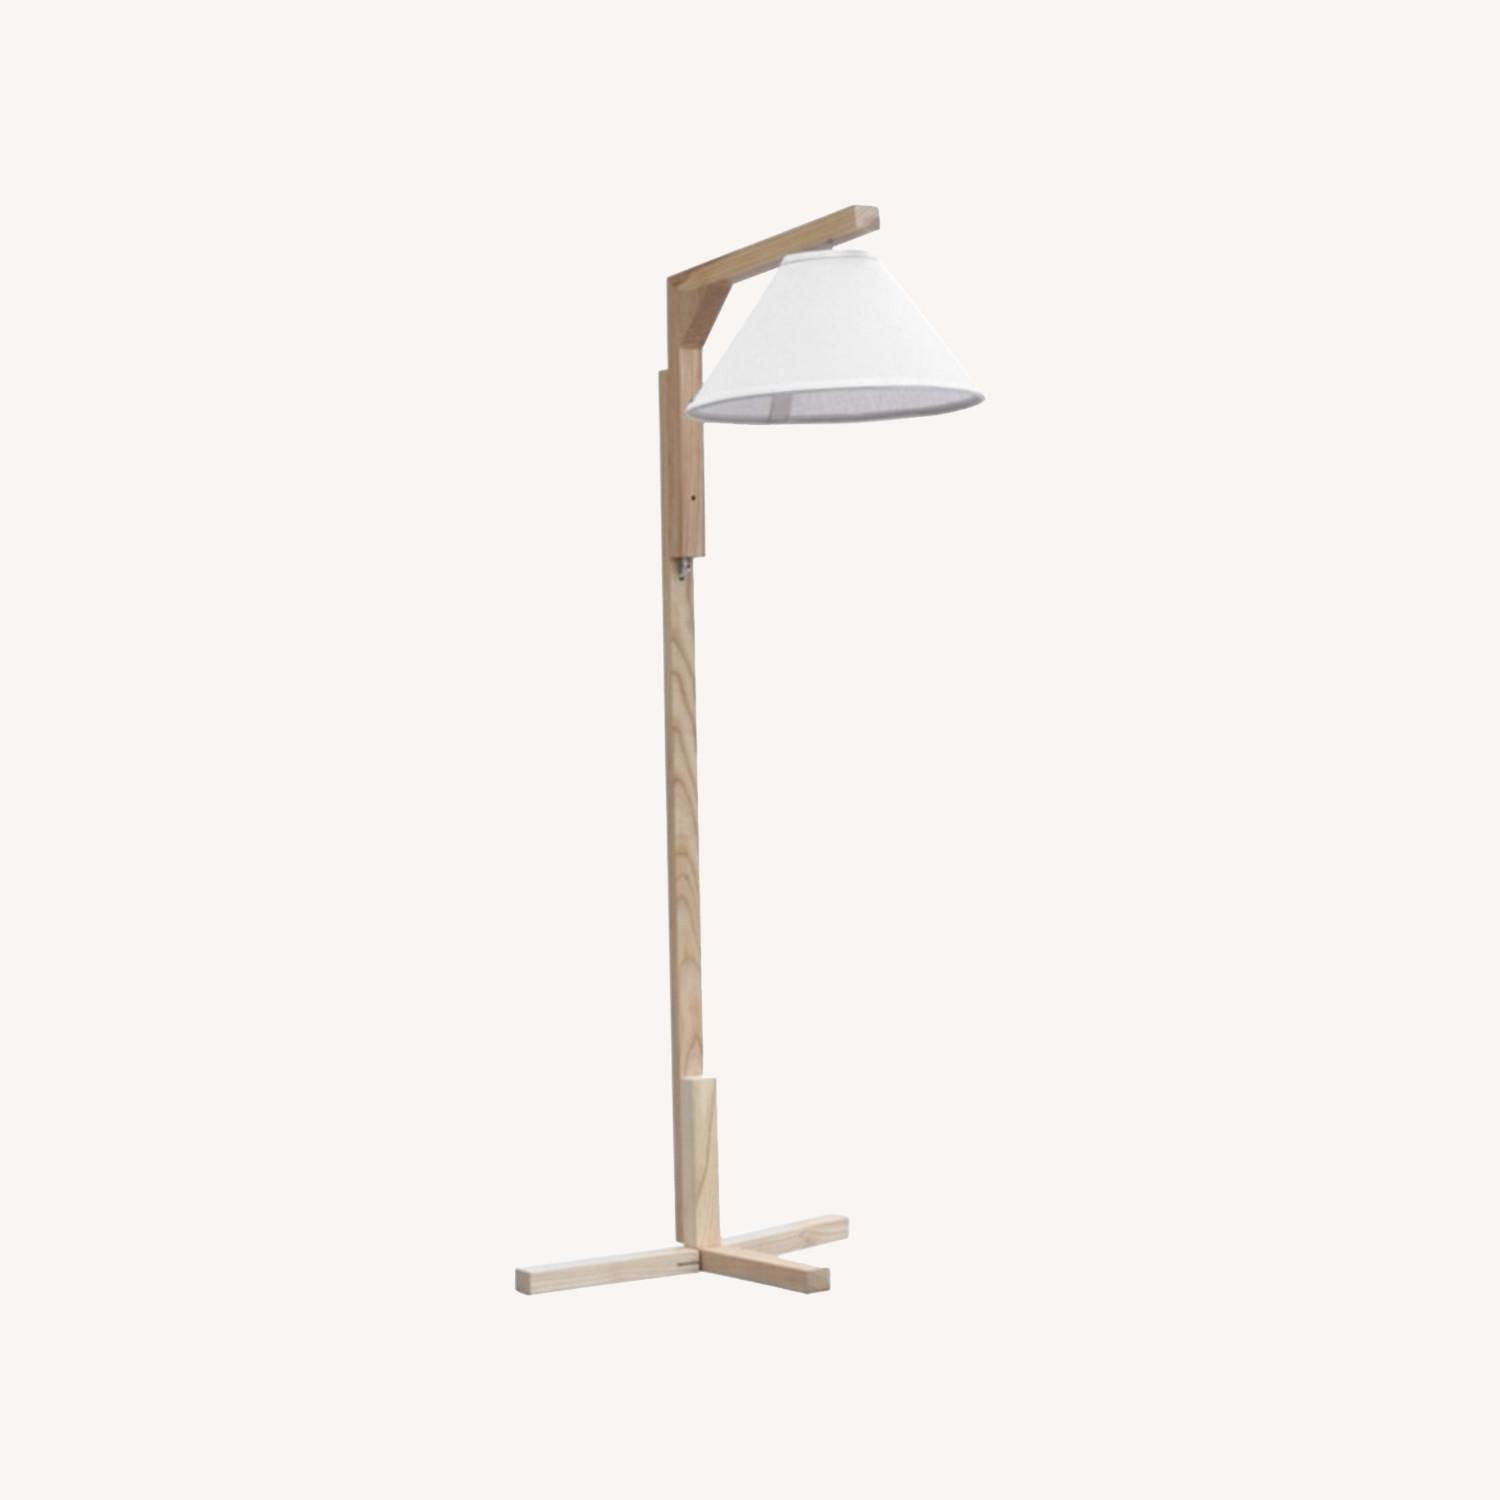 Spiral Floor Lamp In Natural Wood Finish - image-5